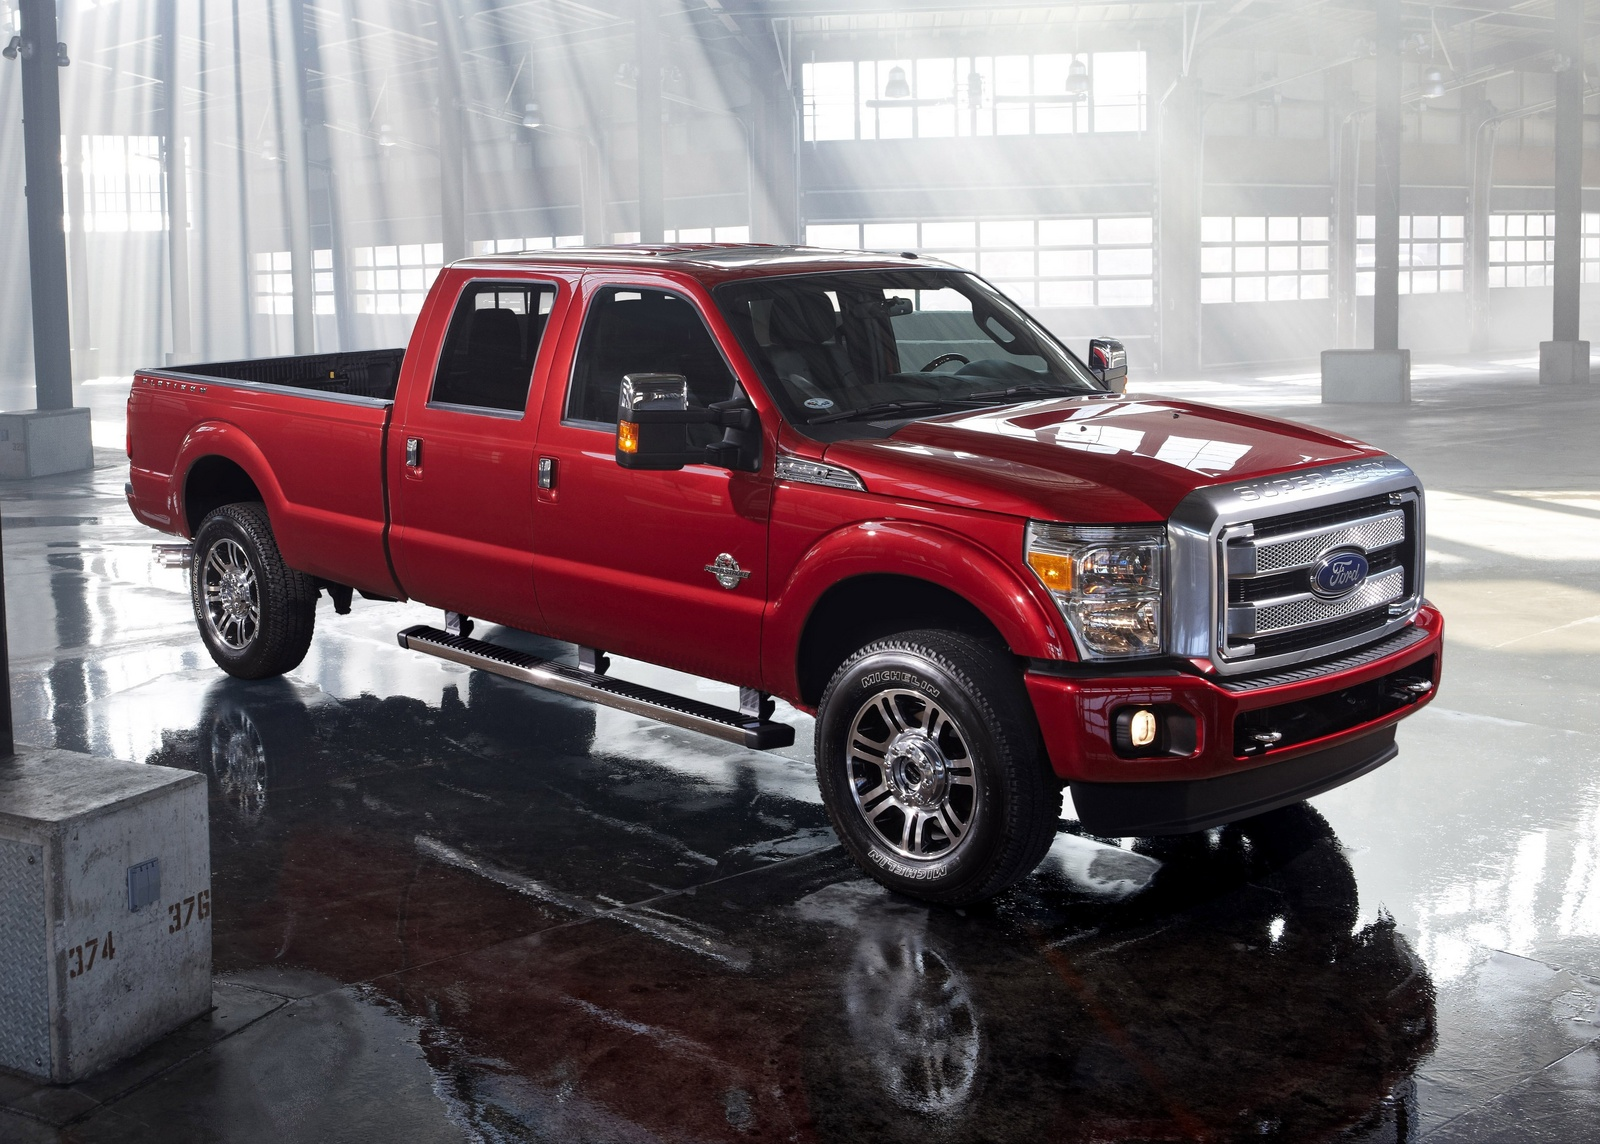 Home / Research / Ford / F-350 Super Duty / 2014